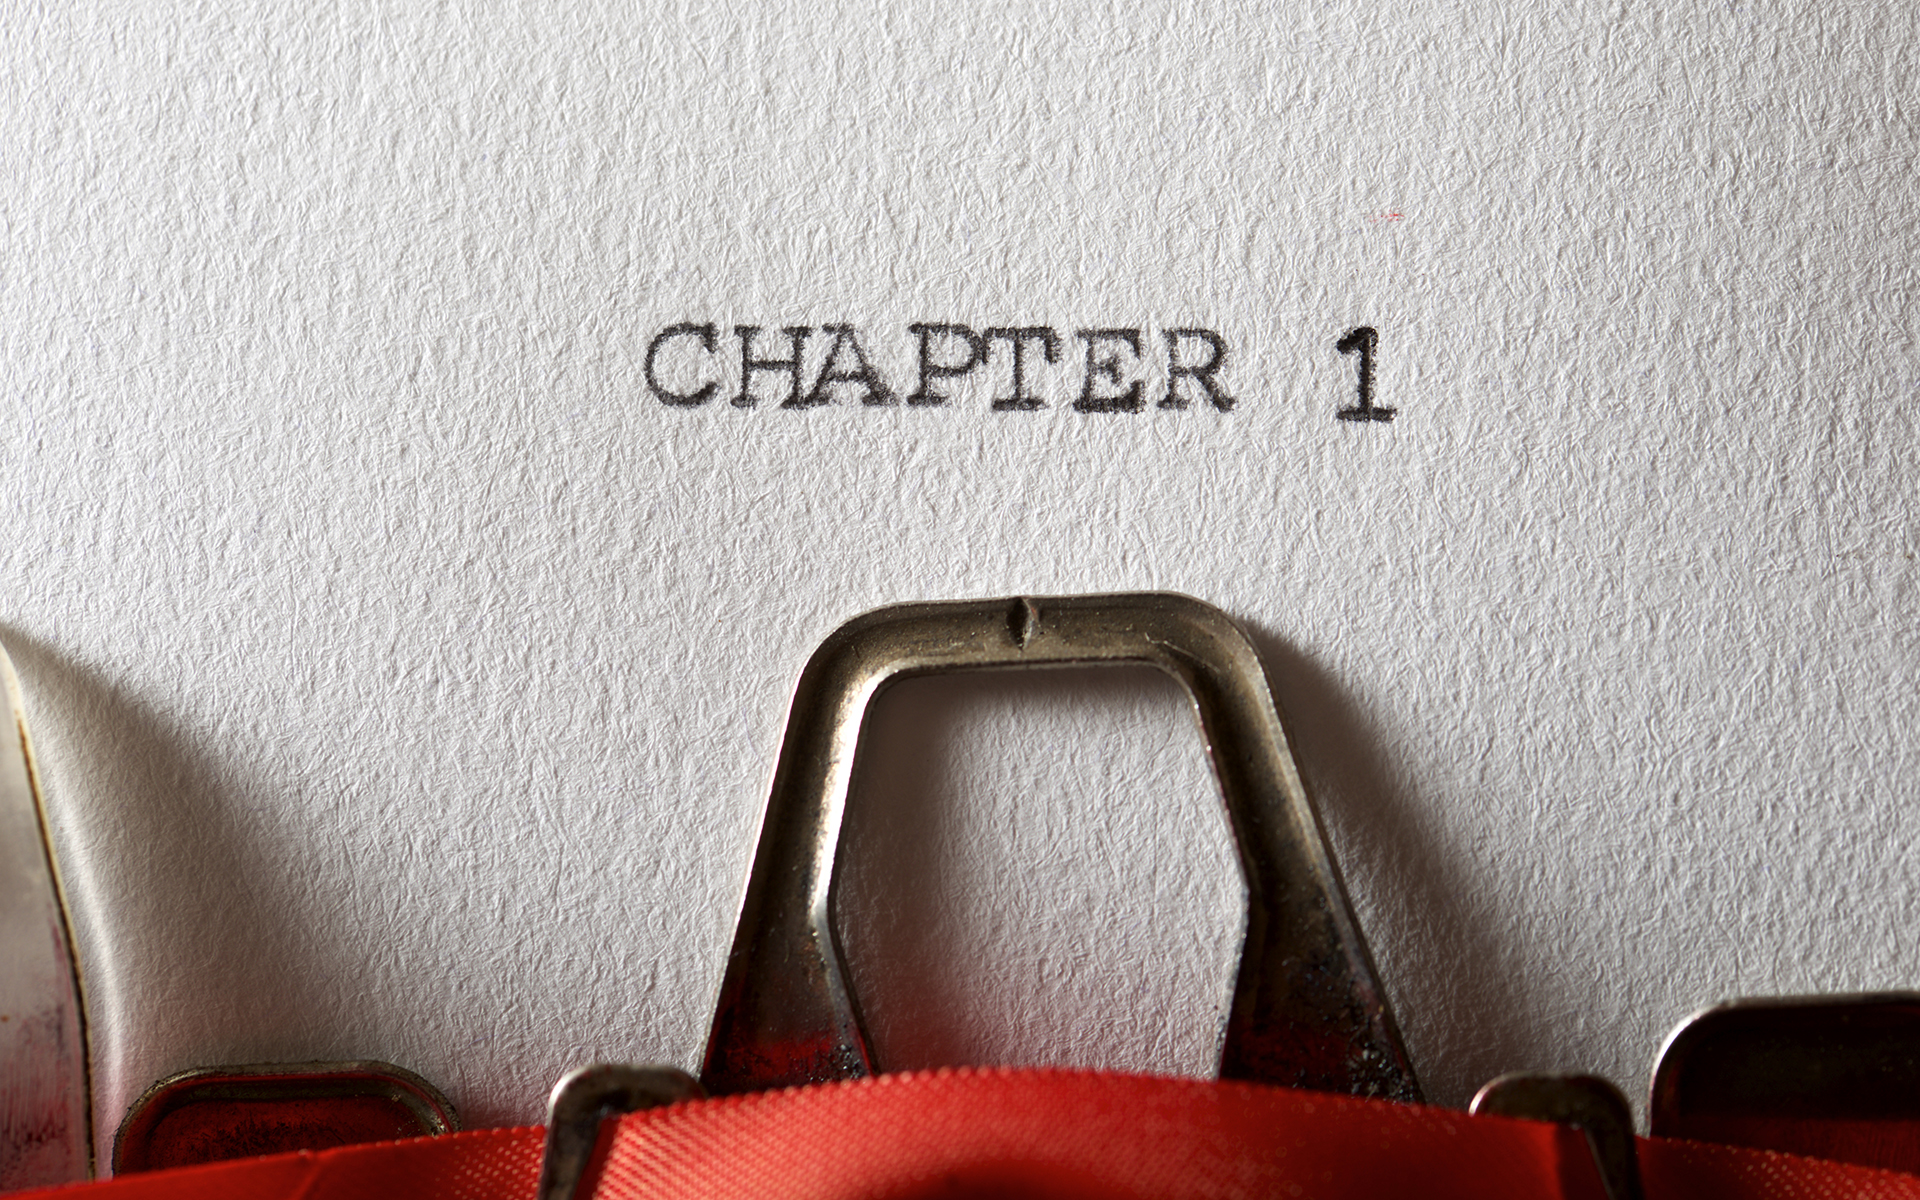 A practice to embrace new beginnings - The sentence, Chapter 1, written with a typewriter